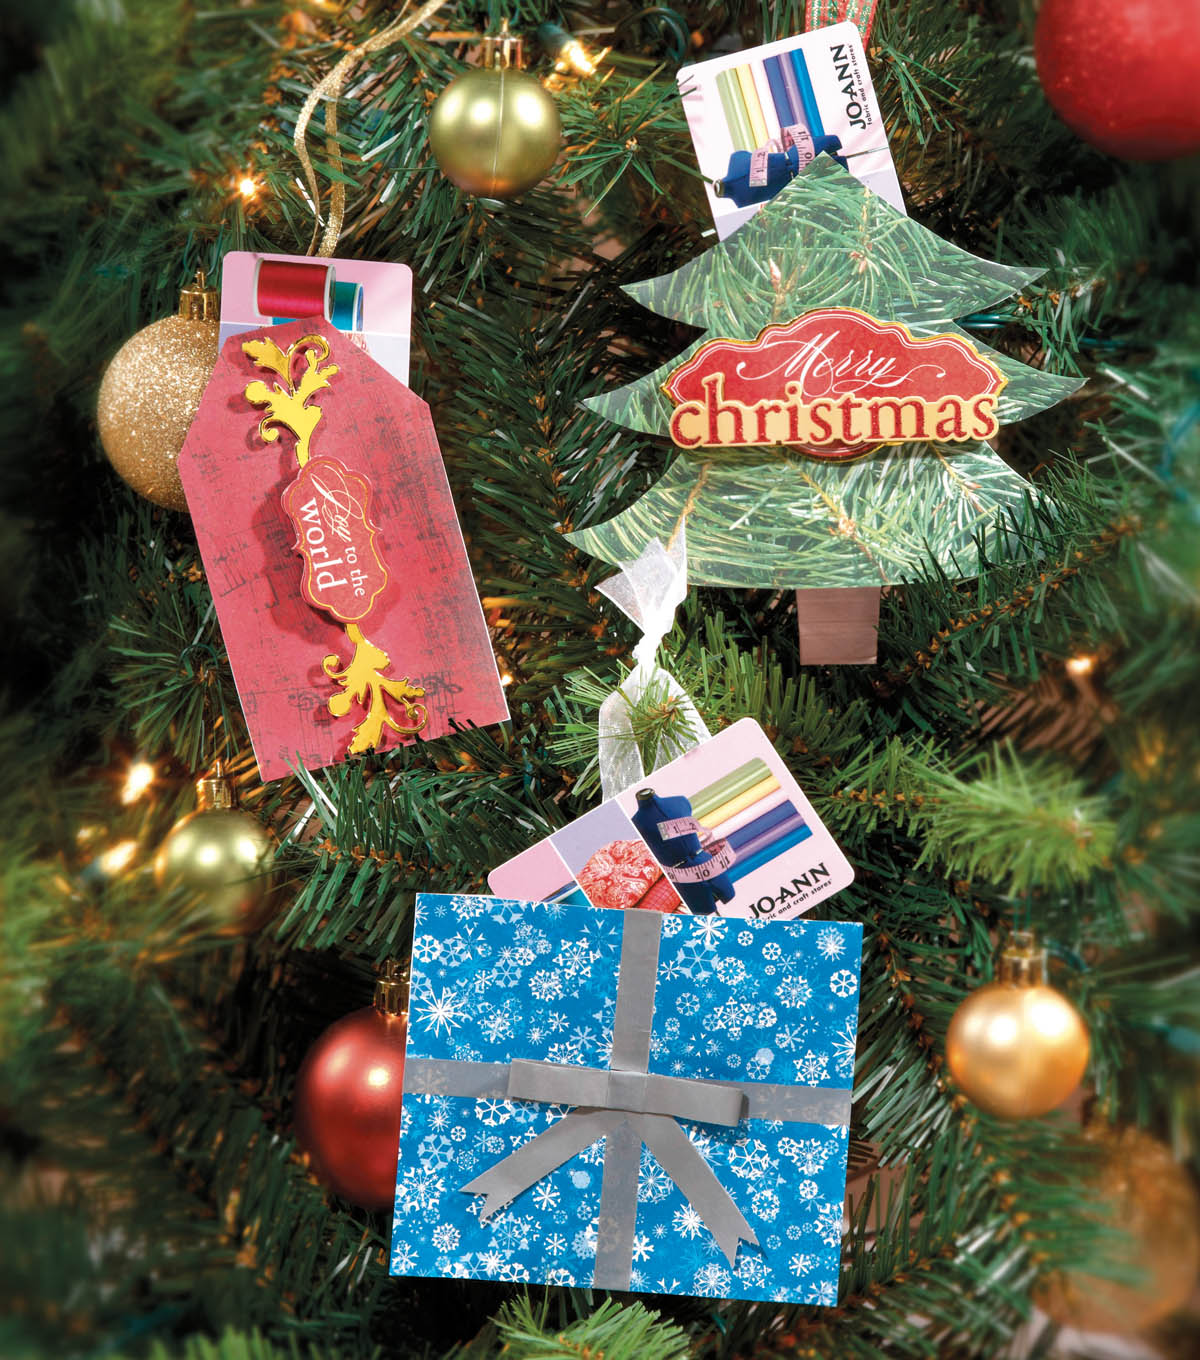 Happy Holidays Paper Gift Card Ornaments